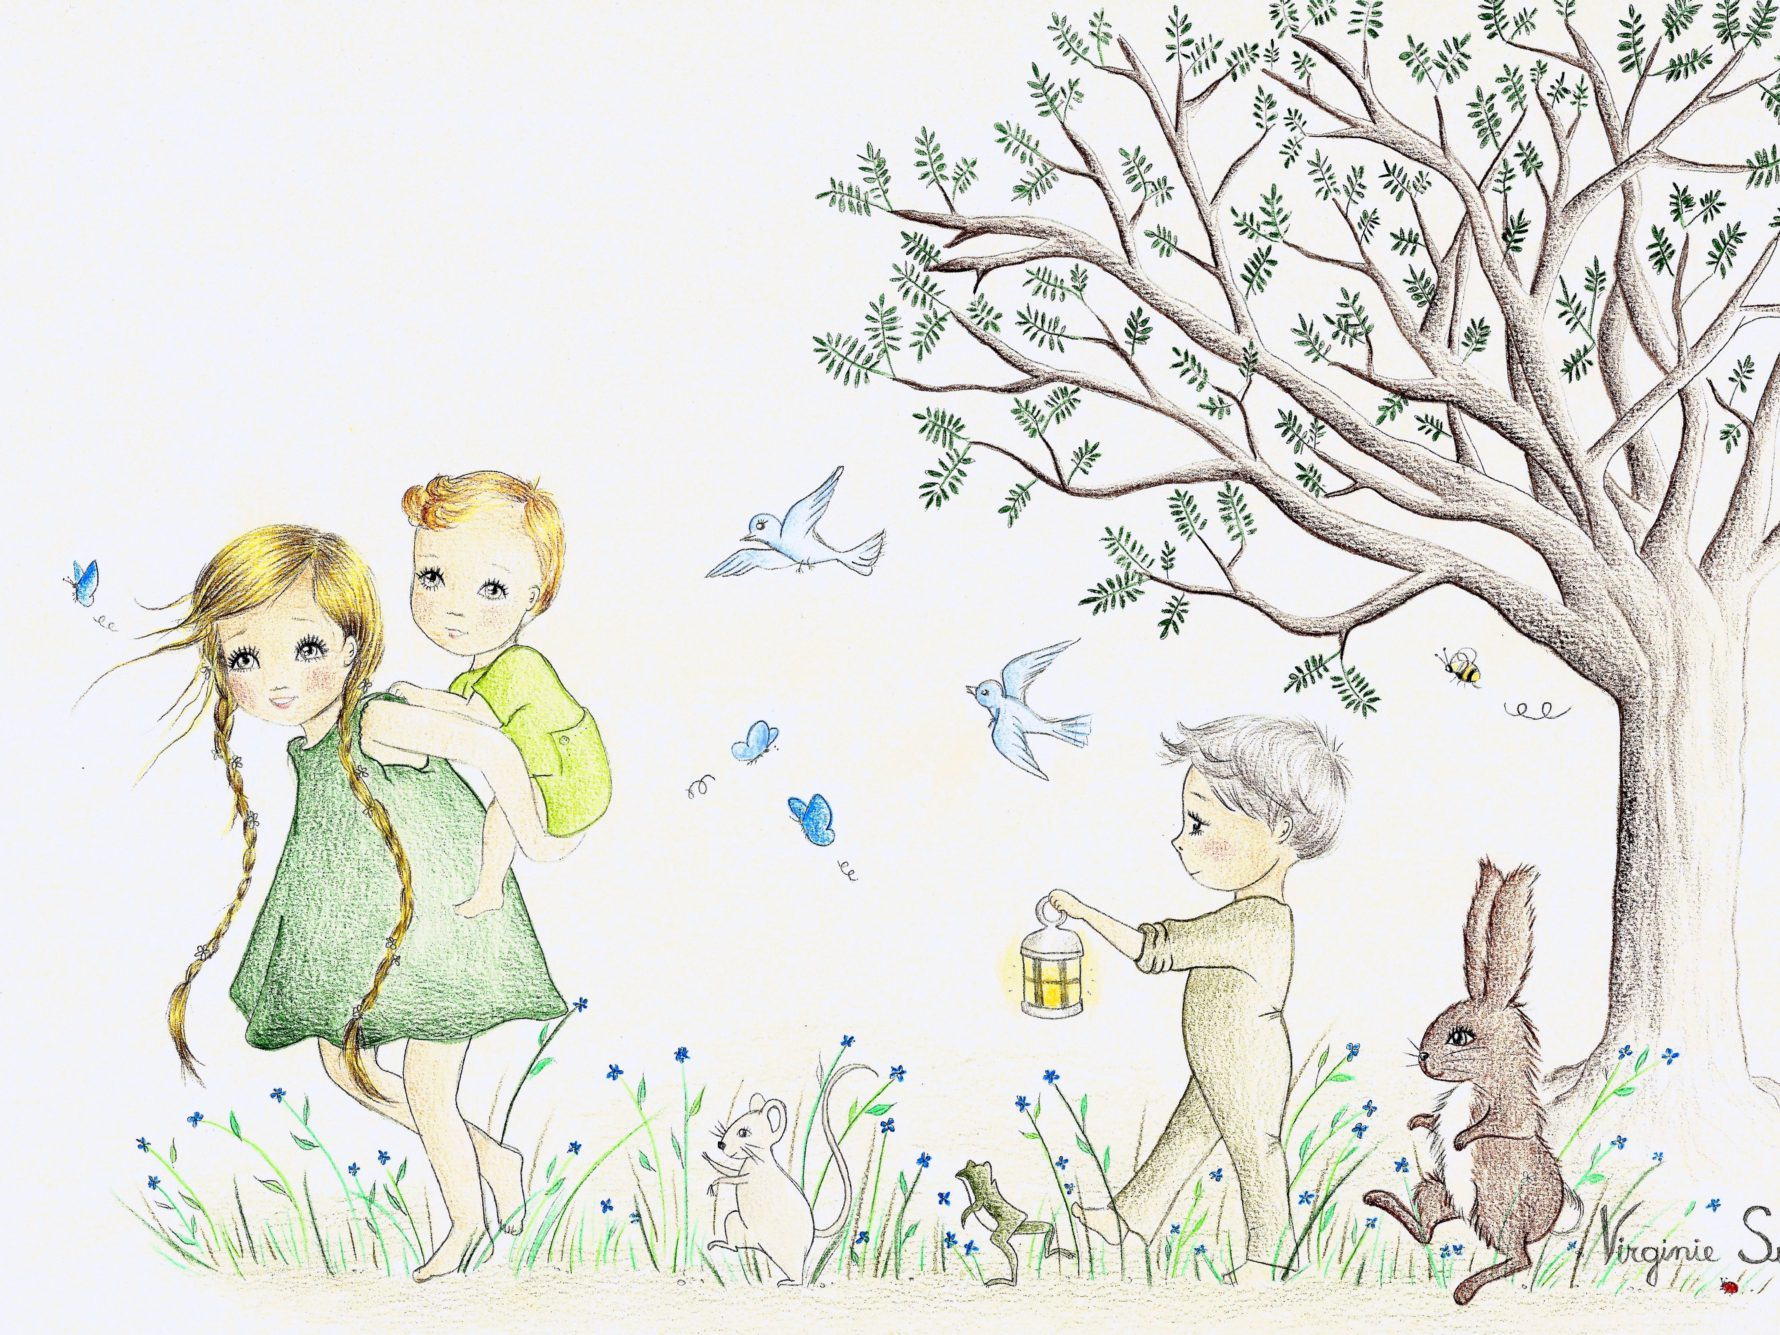 Virginie Suys Children in the forest in green & blue illustration